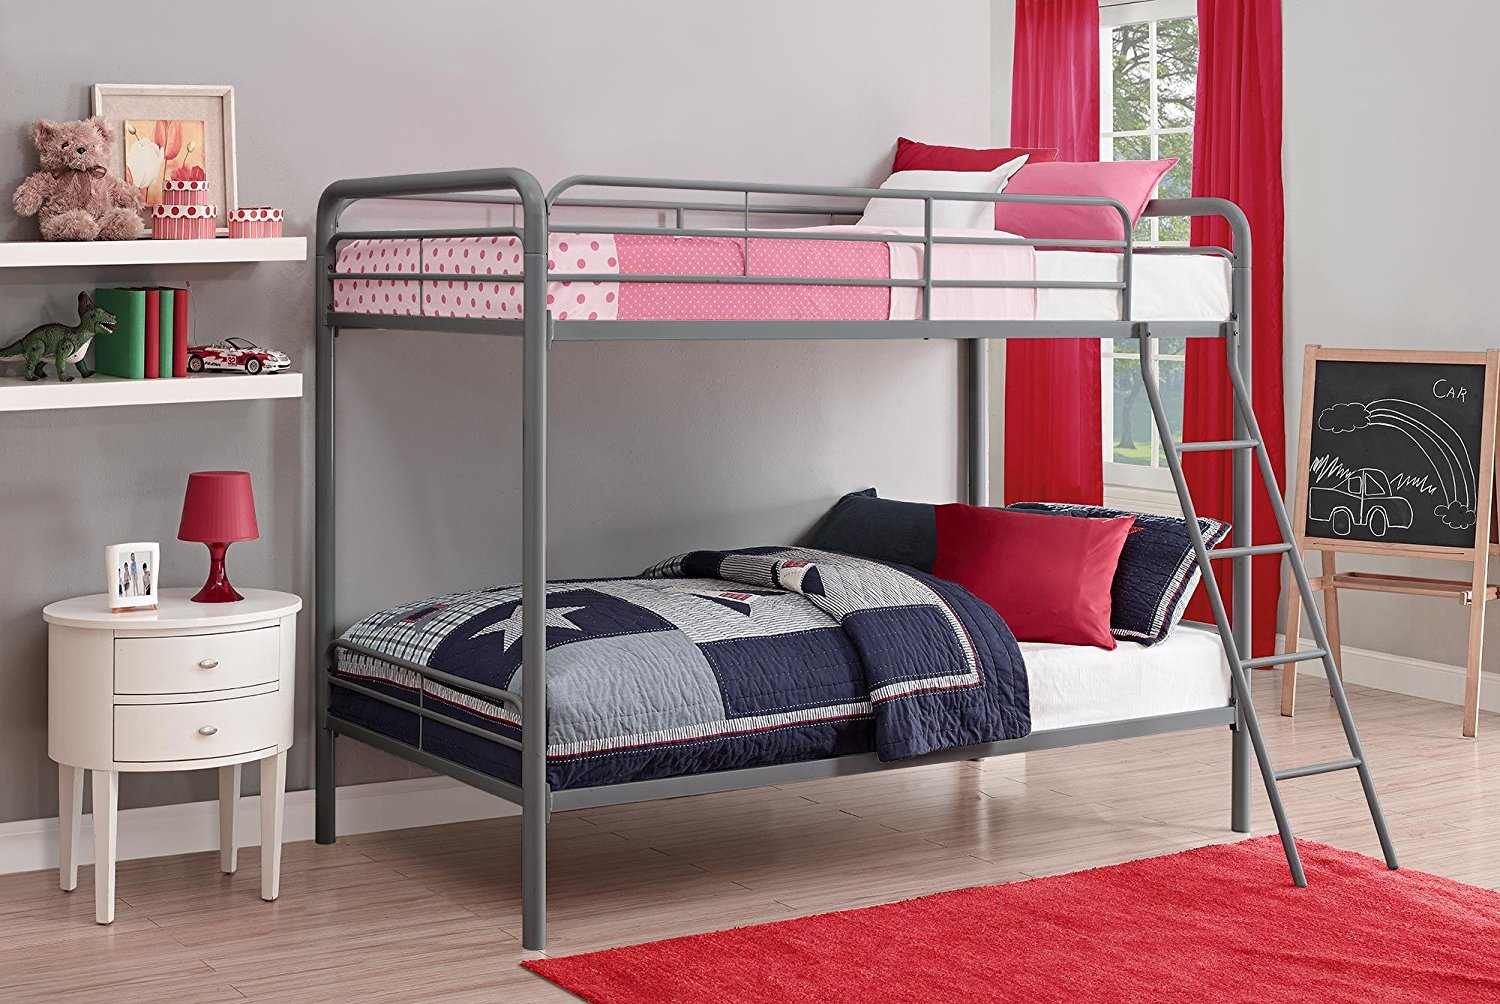 Best Bunk Beds DHP Twin-Over-Twin Bunk Bed with Metal Frame and Ladder